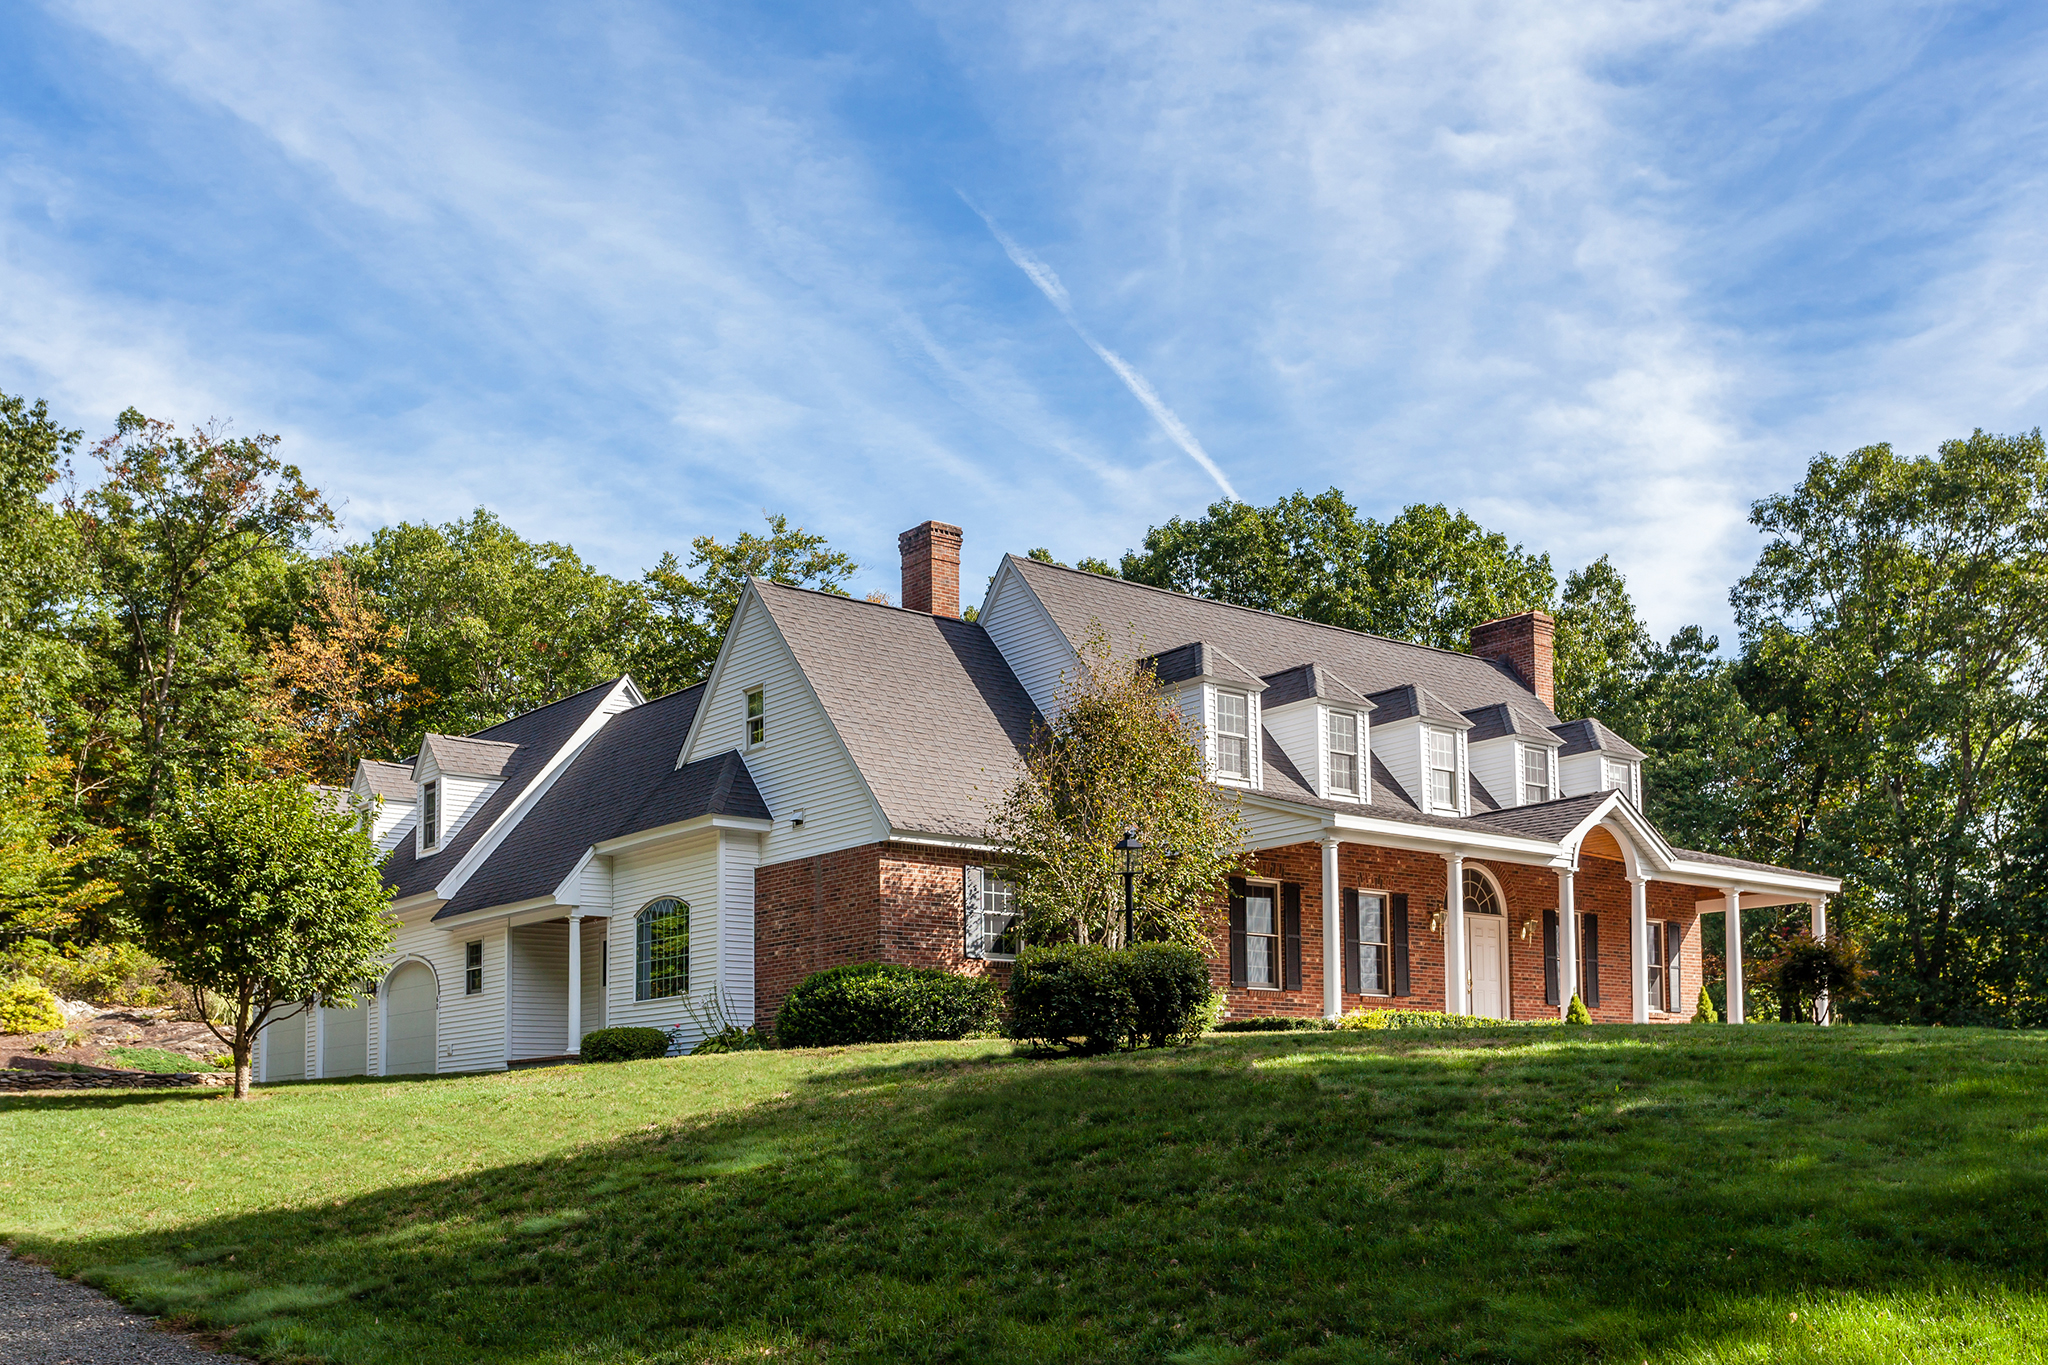 Single Family Home for Sale at Country Cape 60 Stone Pit Rd Woodbury, Connecticut 06798 United States